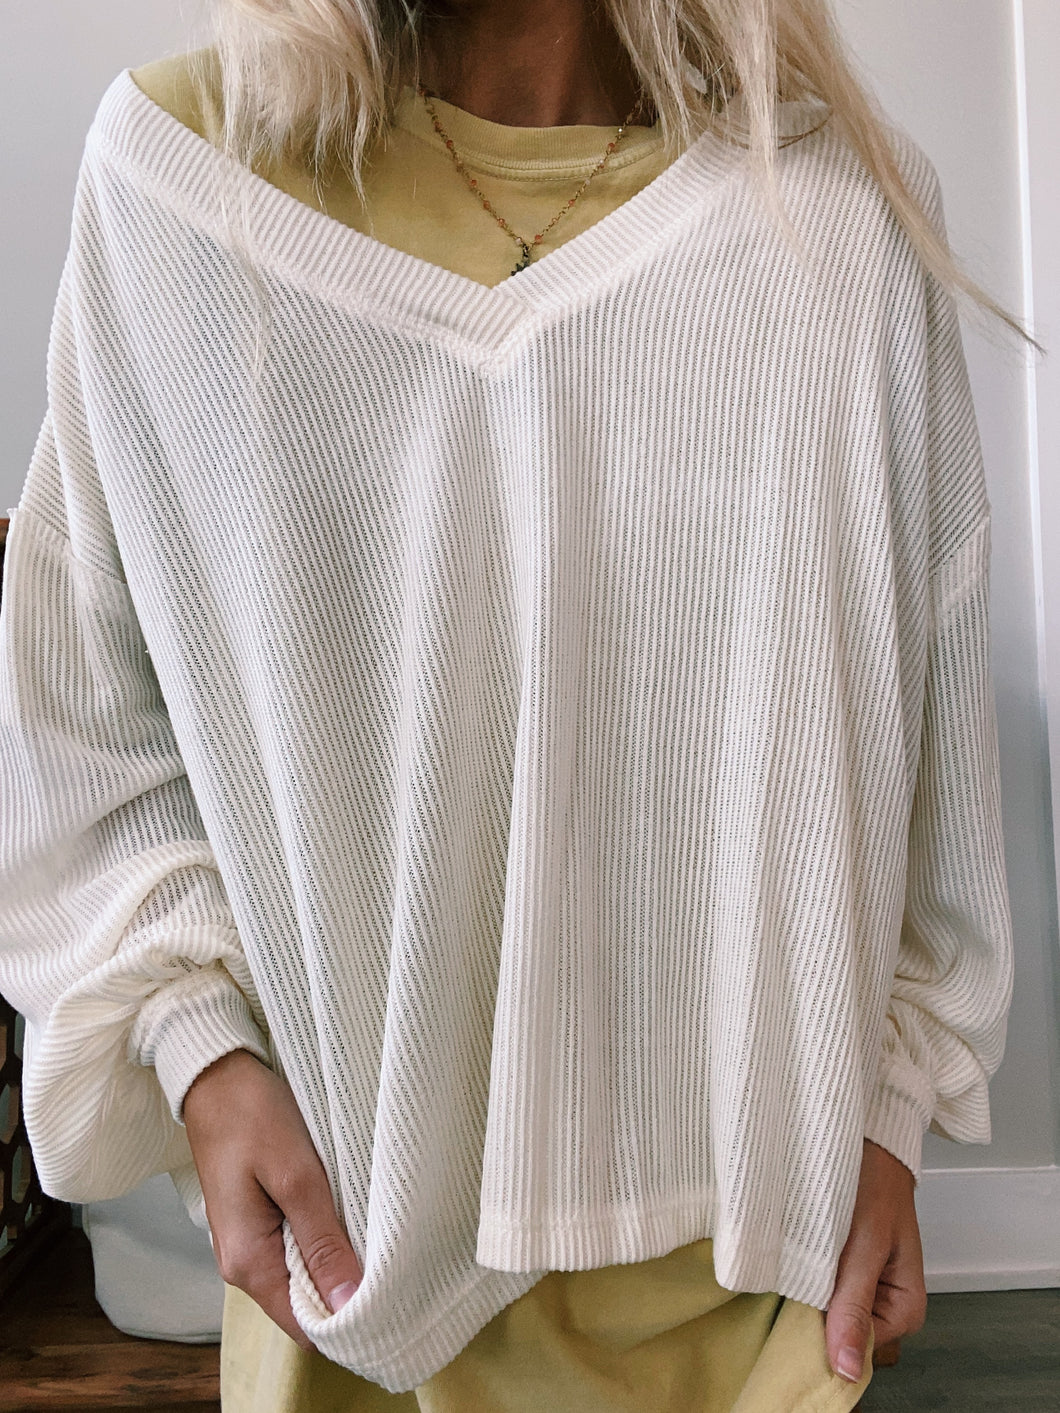 CREAM RIBBED SWEATER - Olive Lynn